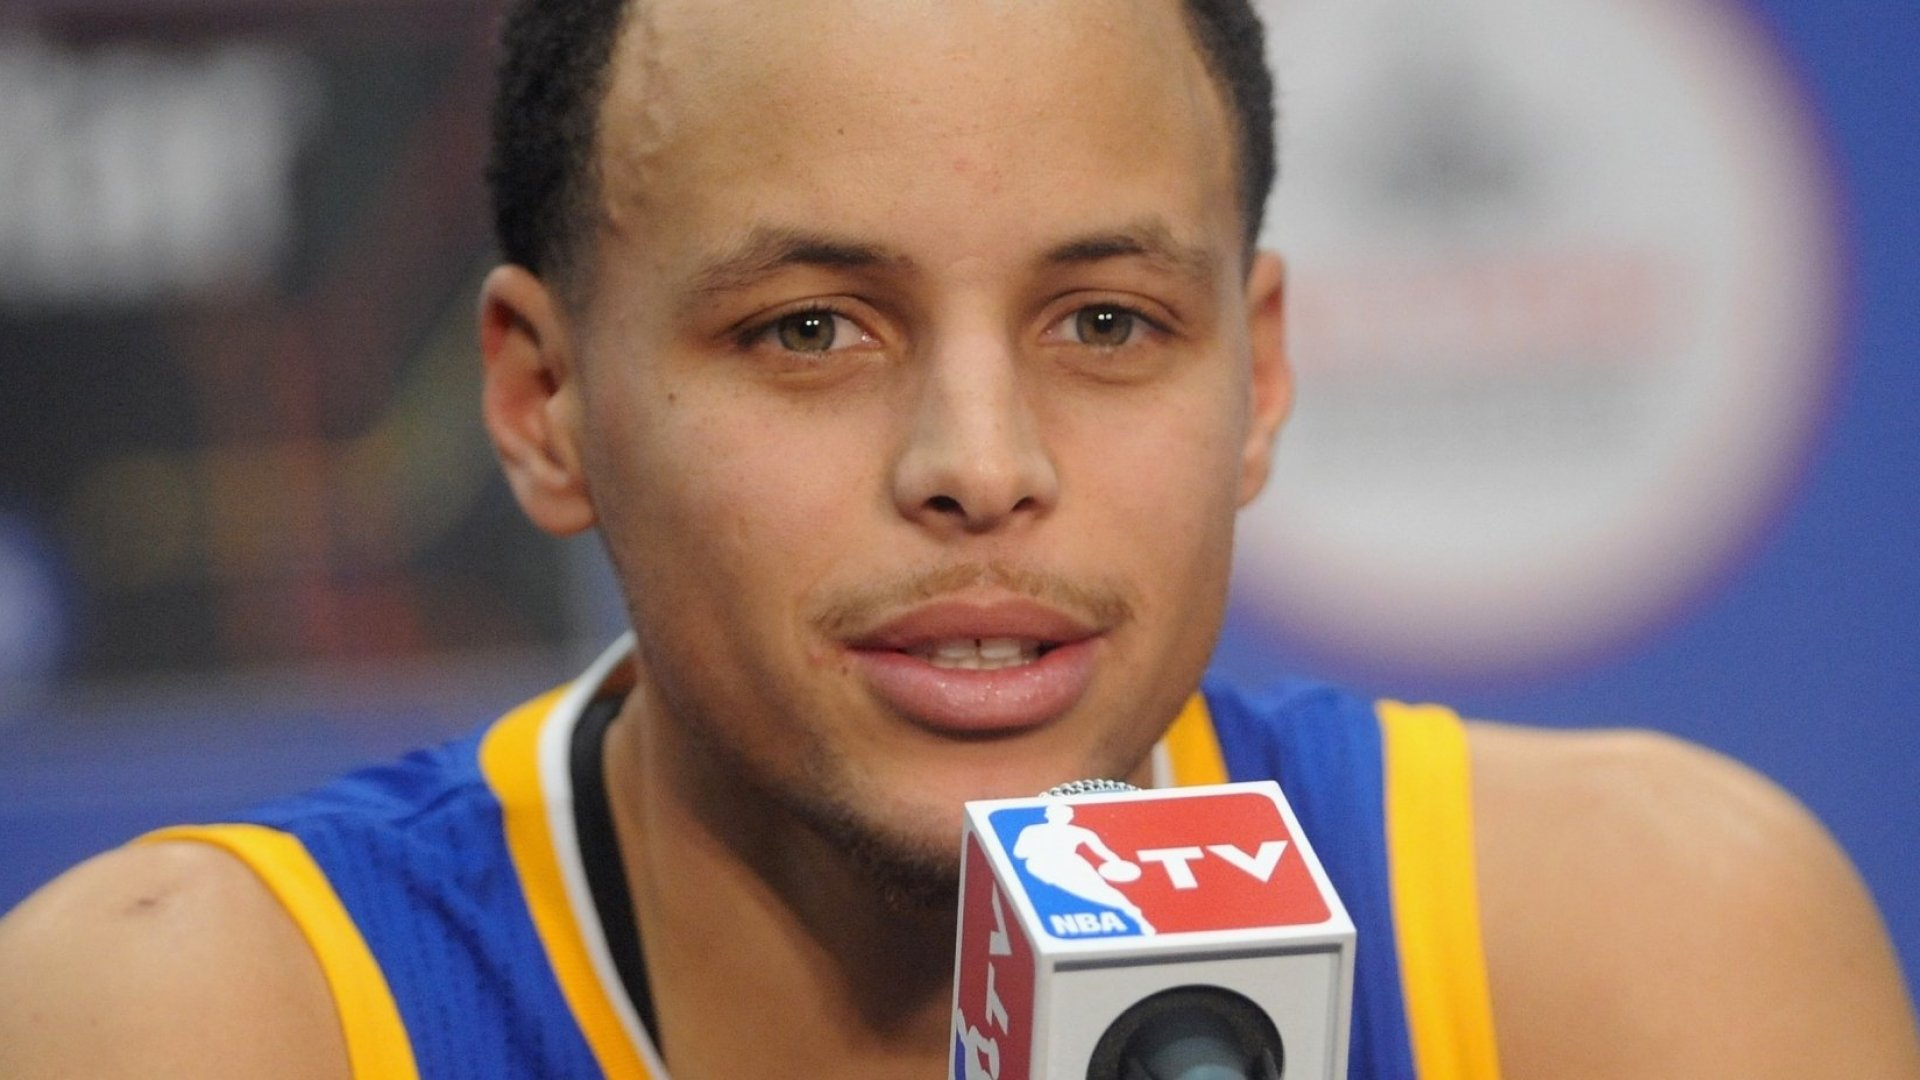 Stephen Curry Just Got the Best Pep Talk Ever. Here's What You Can Learn From It